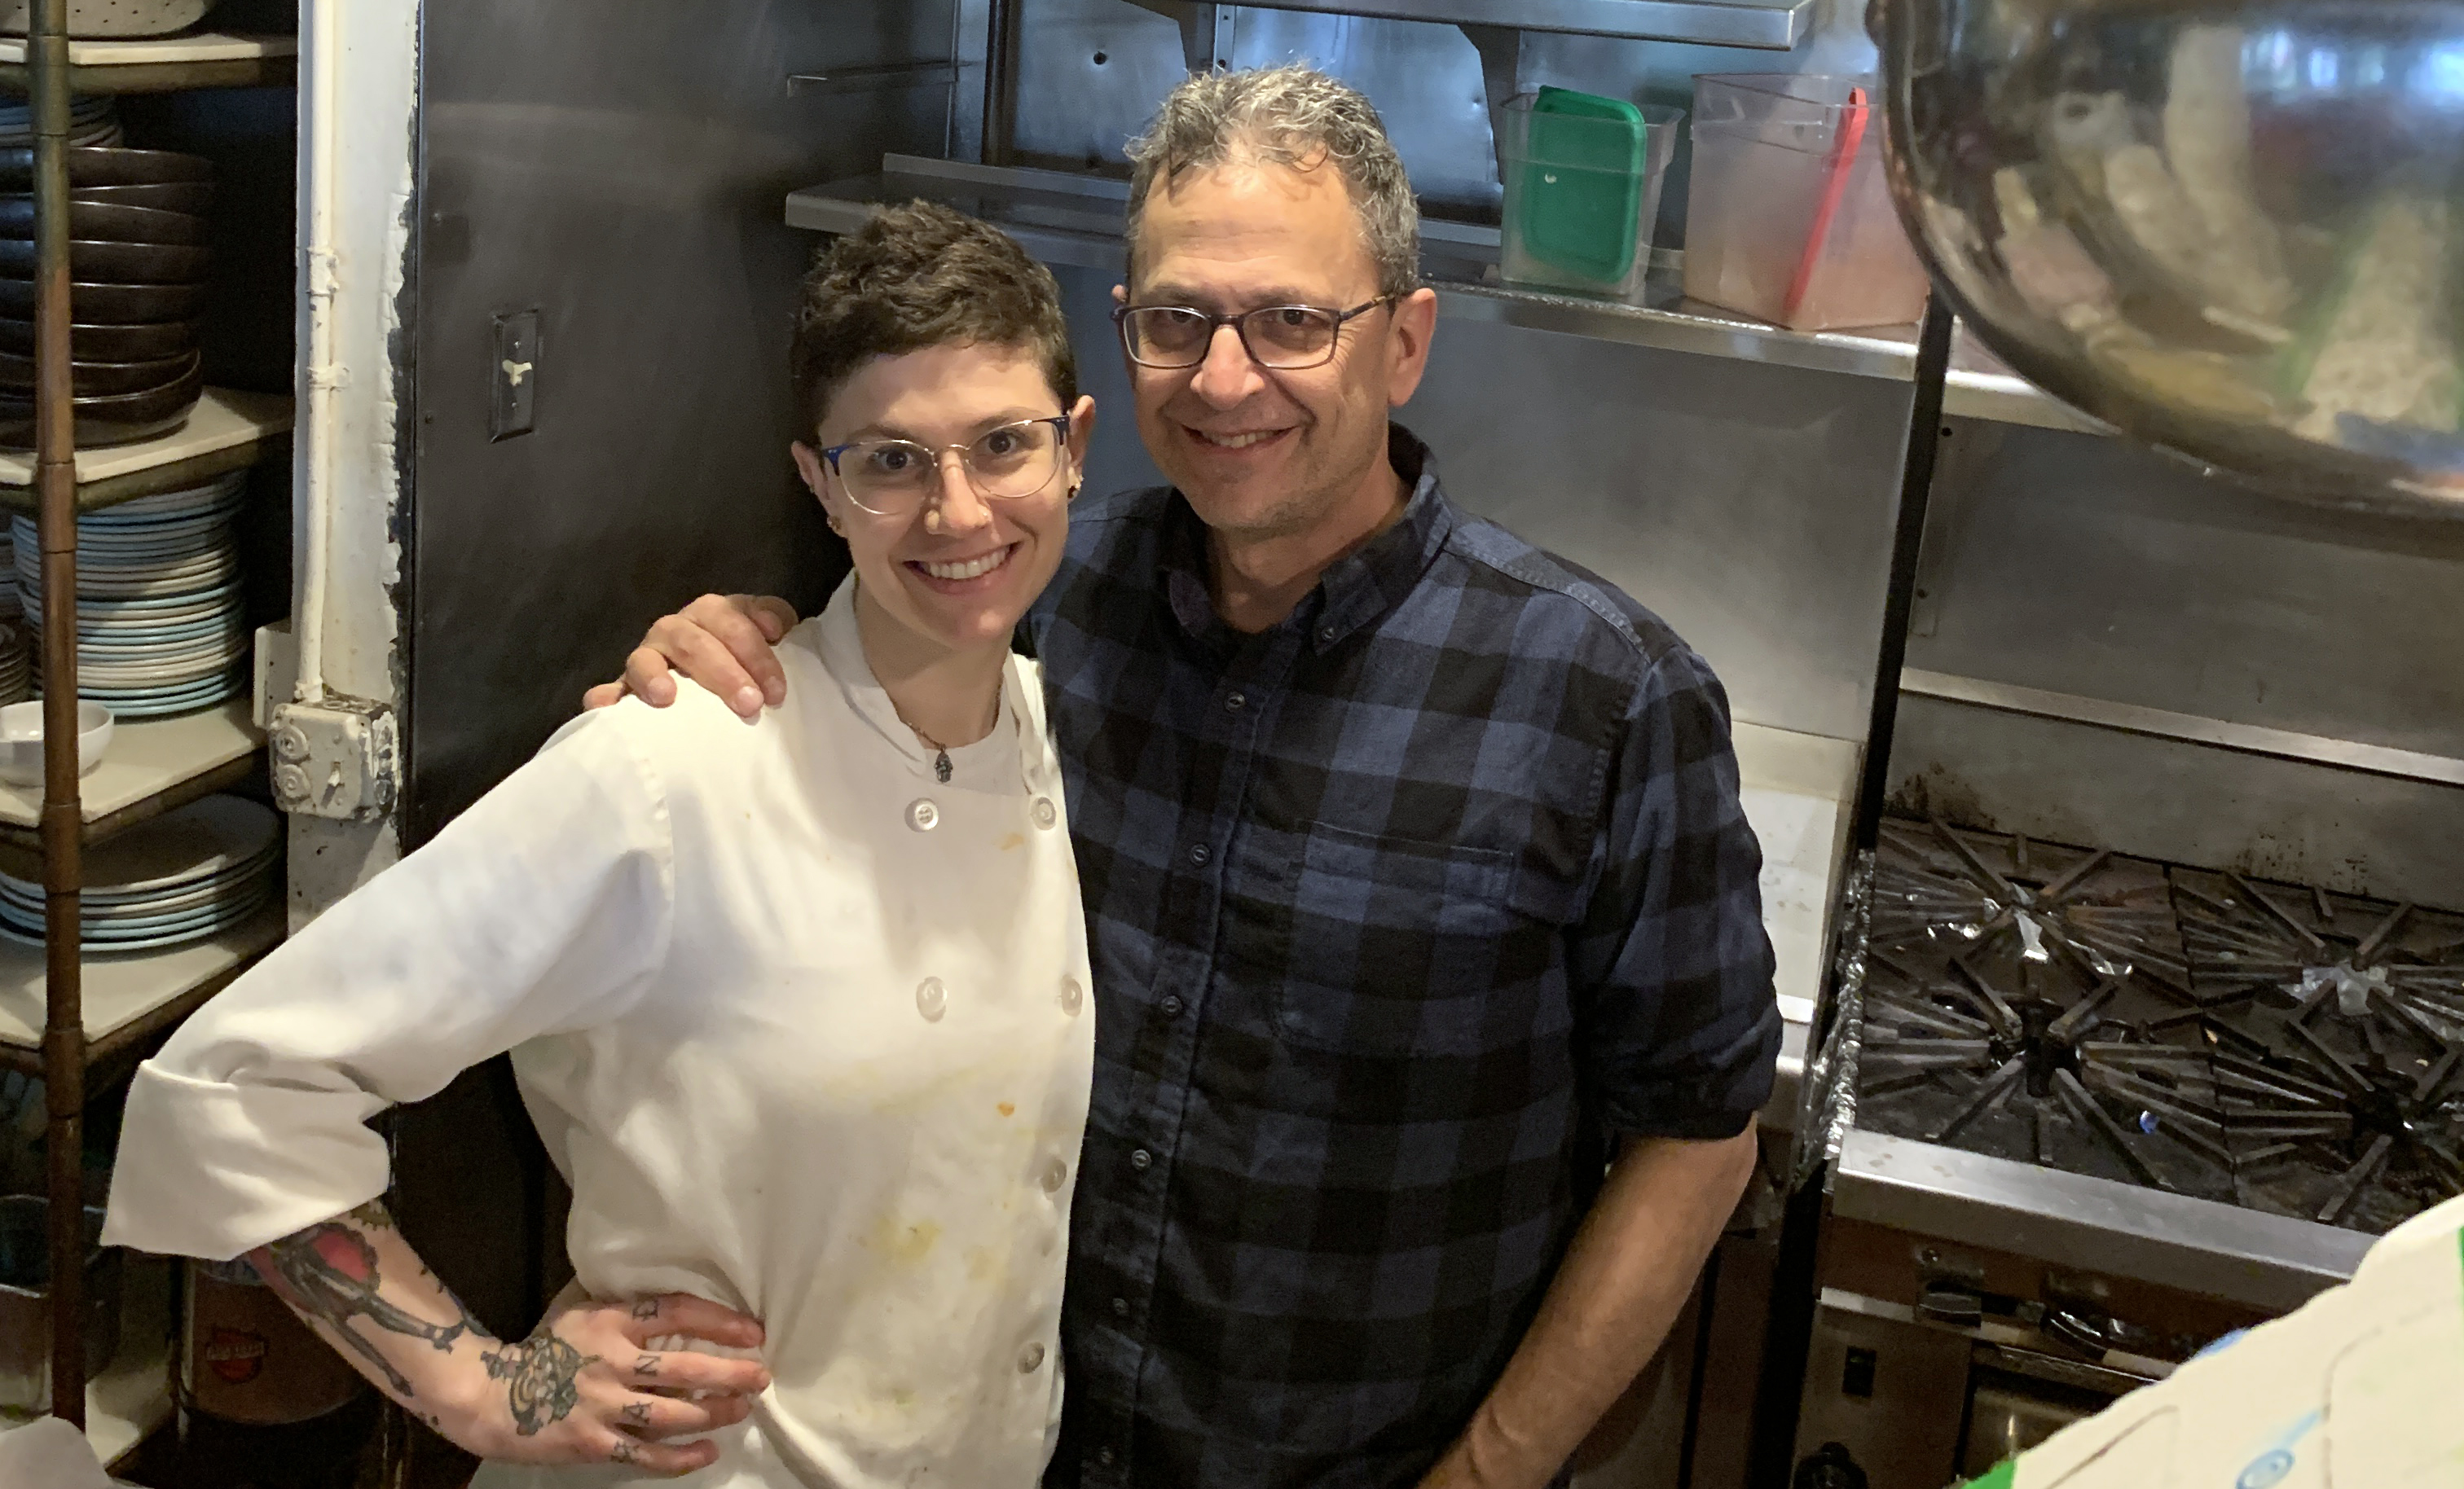 Firefly chef-owner Brad Levy in the kitchen with his chef de cuisine, Haley Sausner (Photo/Courtesy Brad Levy)